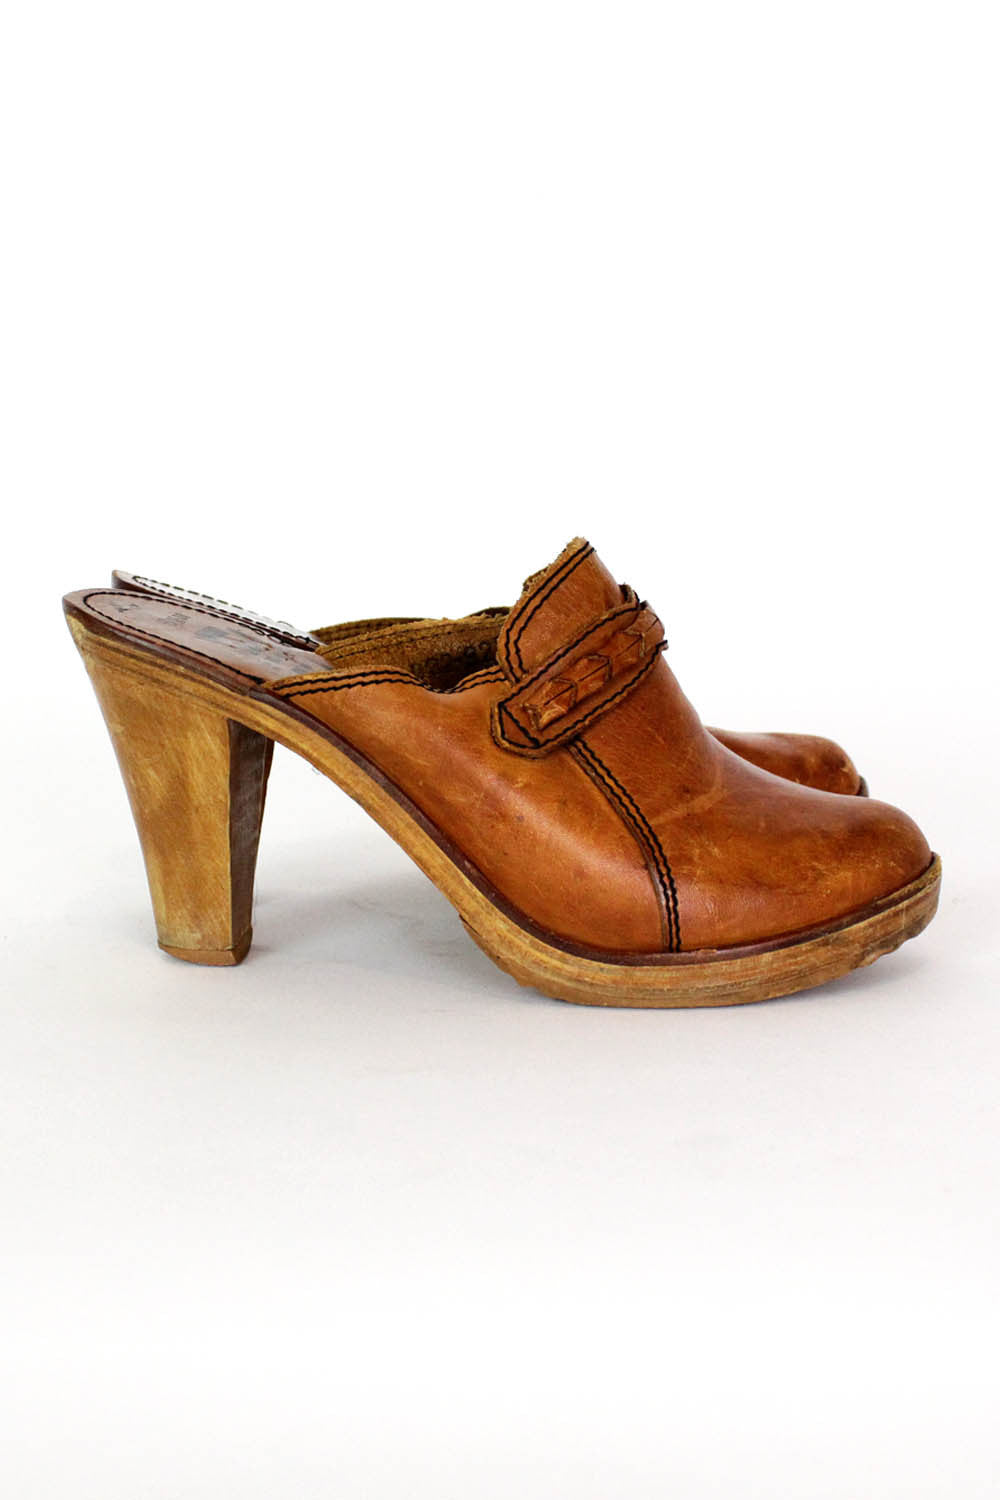 70s Leather & Wood Clogs 6.5